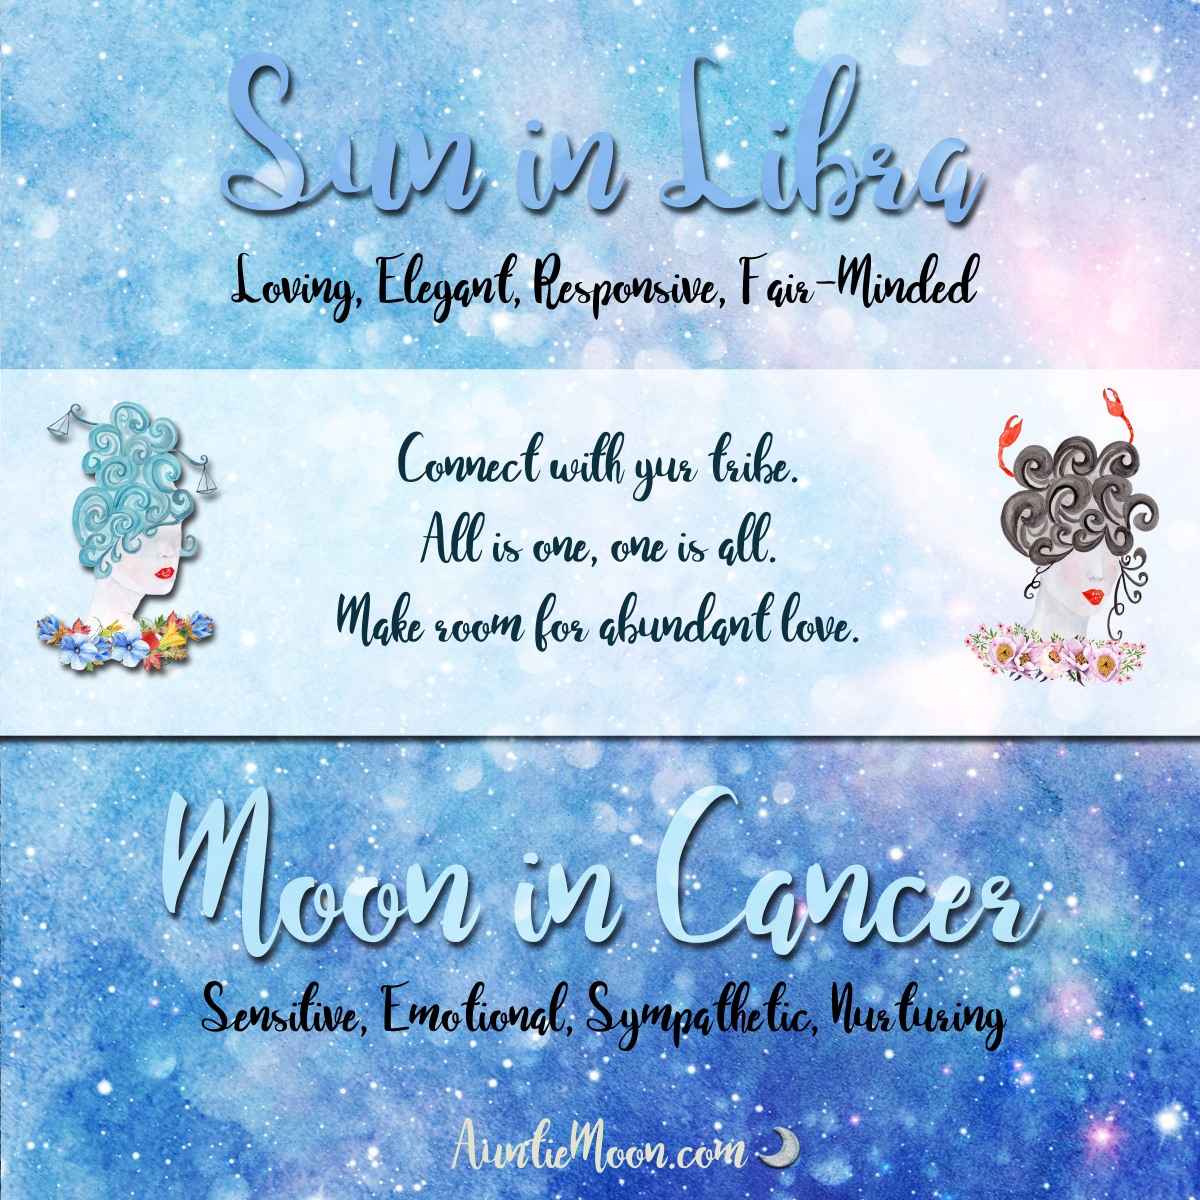 Sun in Libra ~ Moon in Cancer